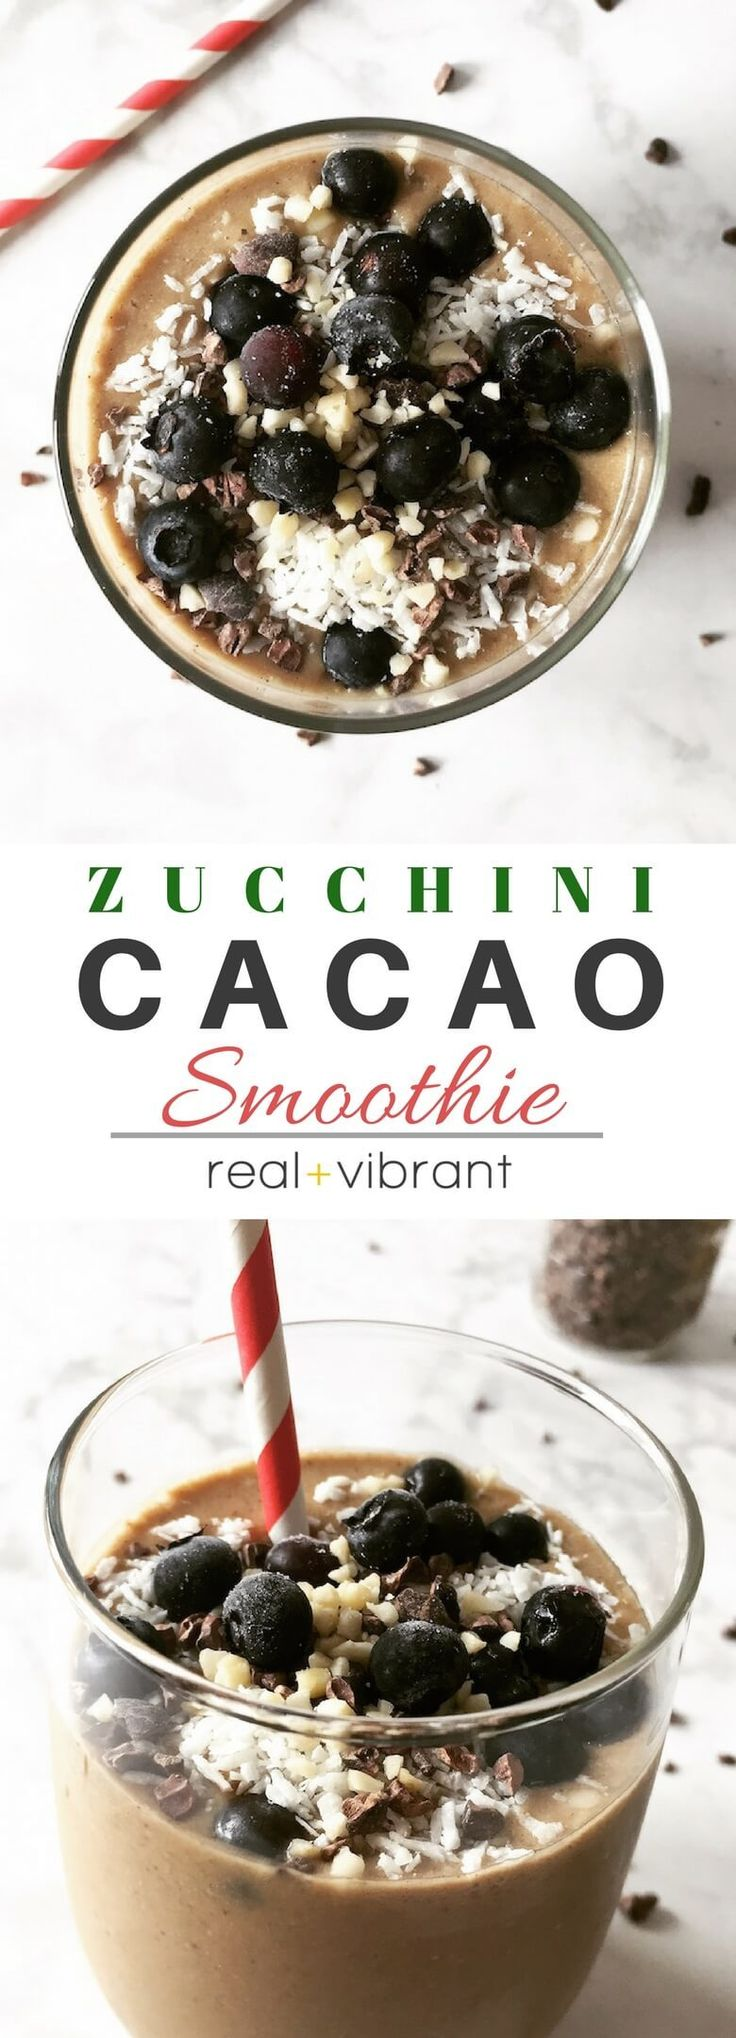 This refreshingly delicious zucchini cacao smoothie is so good you won't even taste the extra serving of zucchini in it! Yes, there's zucchini in this smoothie. And, no, it's not disgusting. In fact, you won't even taste it! It's that delicious. And it's a great way to load your smoothies with extra veggies. Win win,...